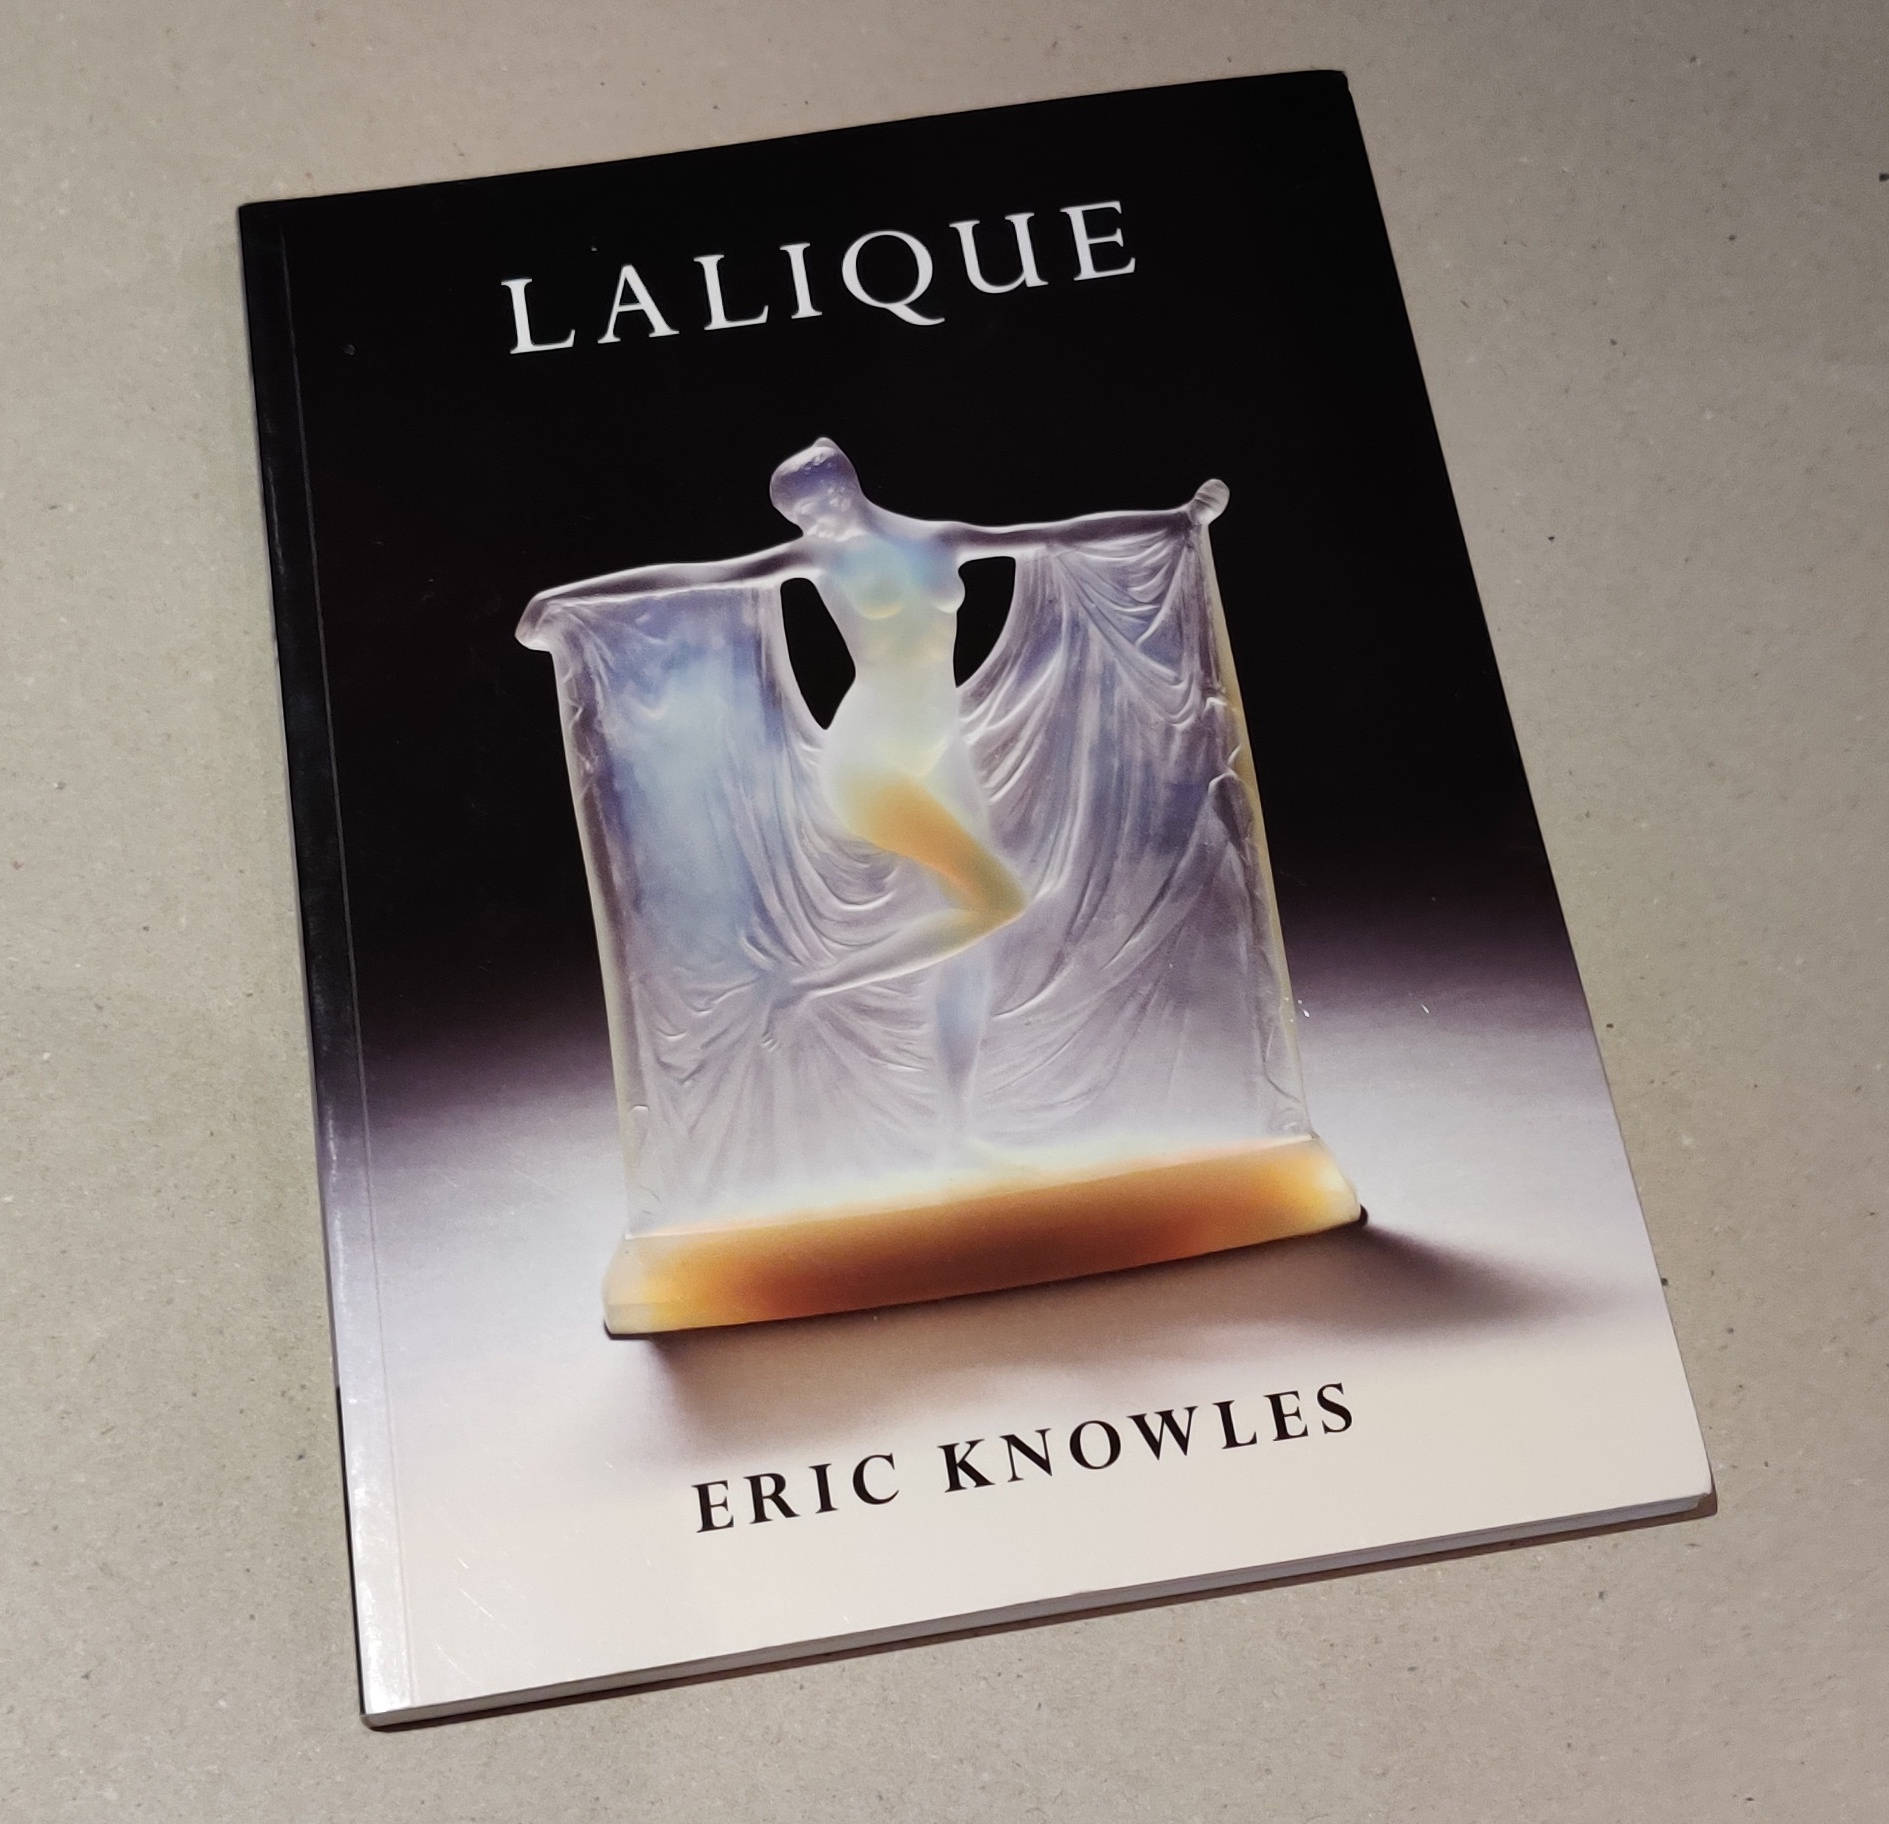 Lalique book by Eric Knowles